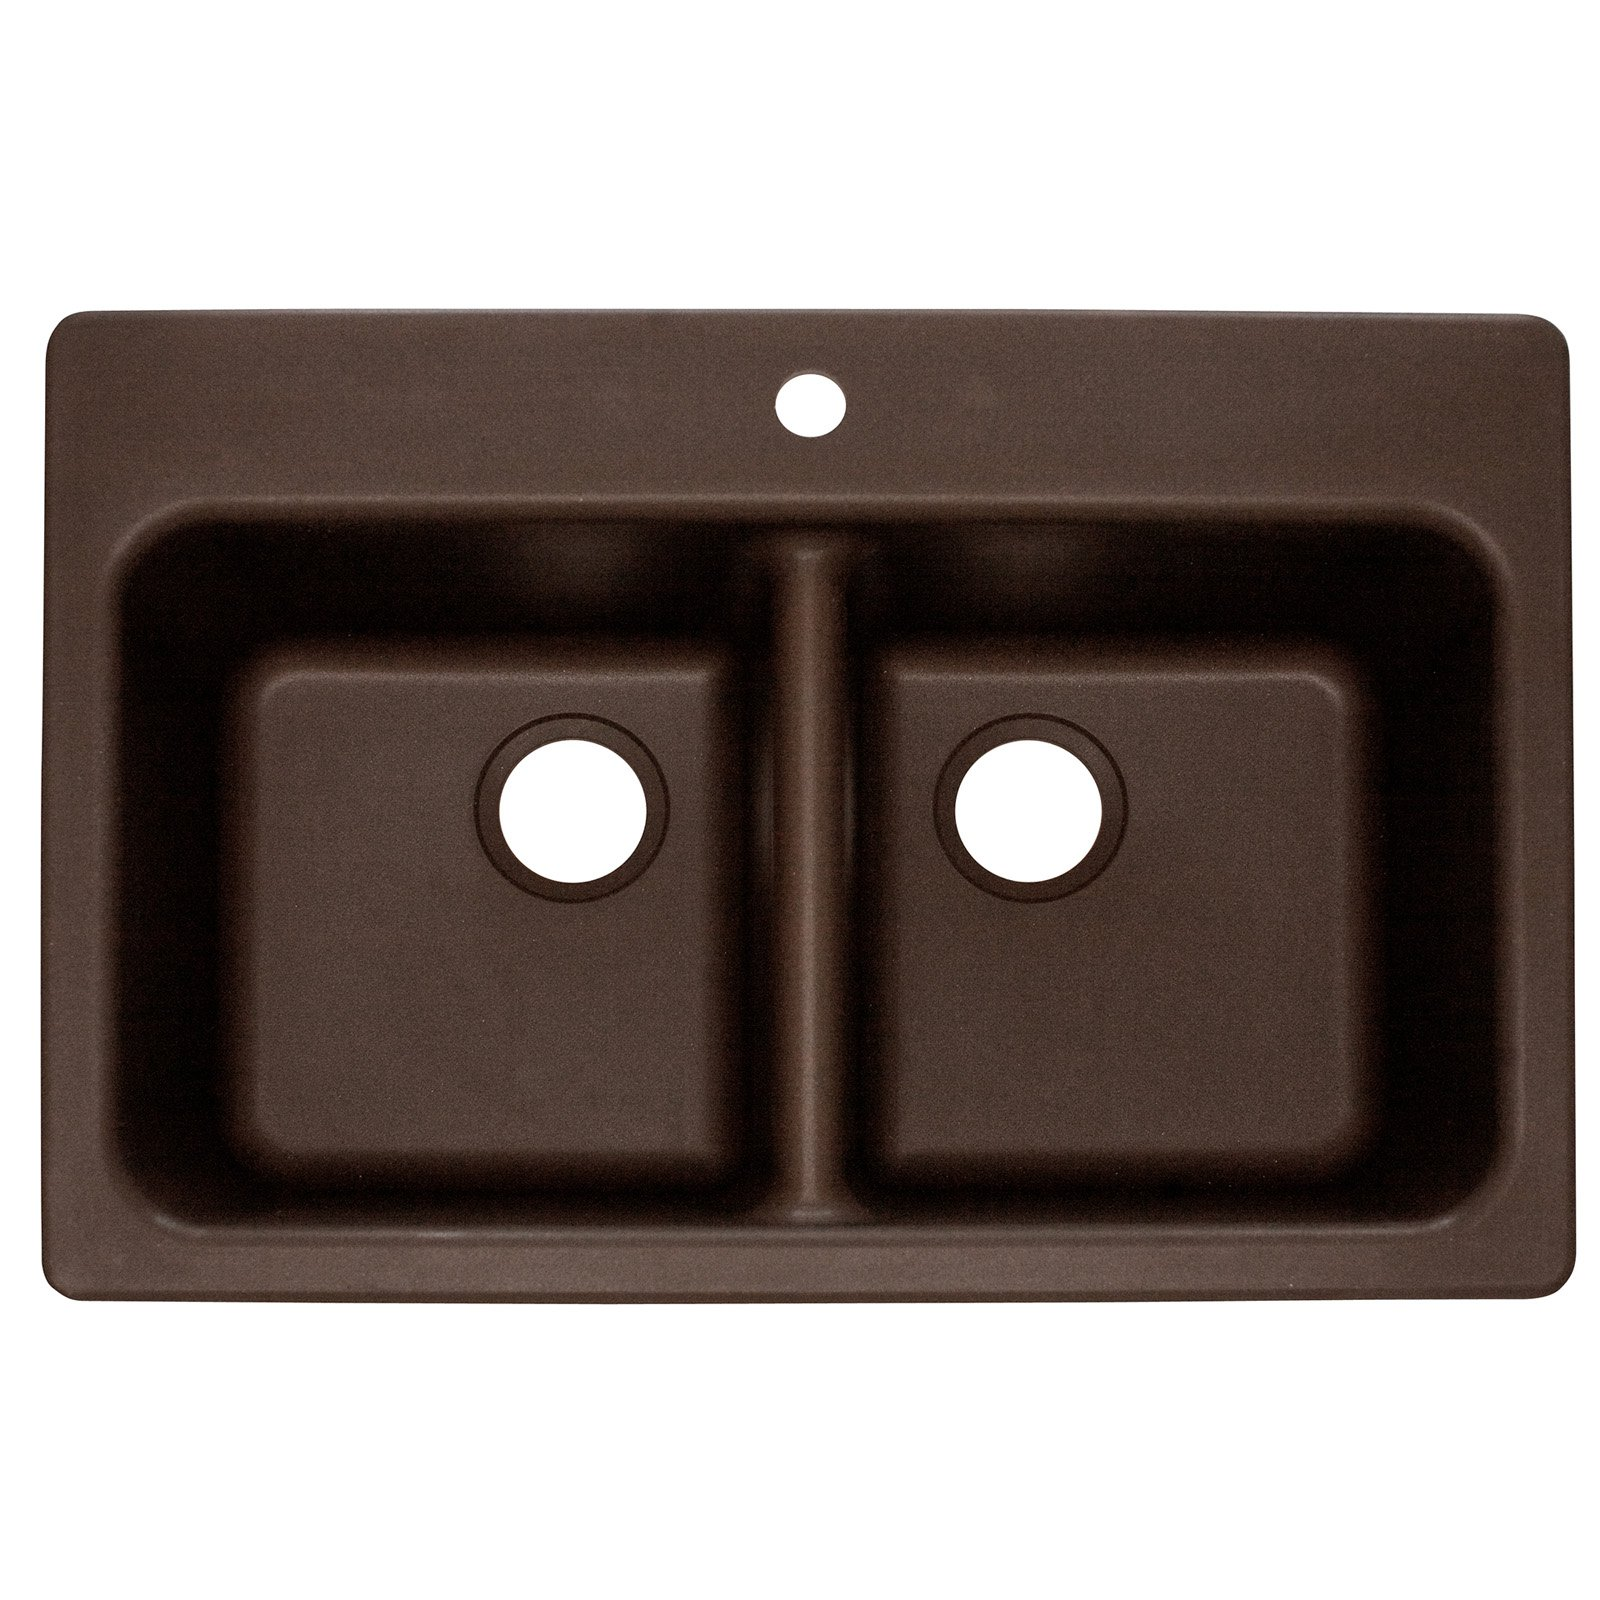 Fhp FPM3322-1 Double Basin Undermount Kitchen Sink